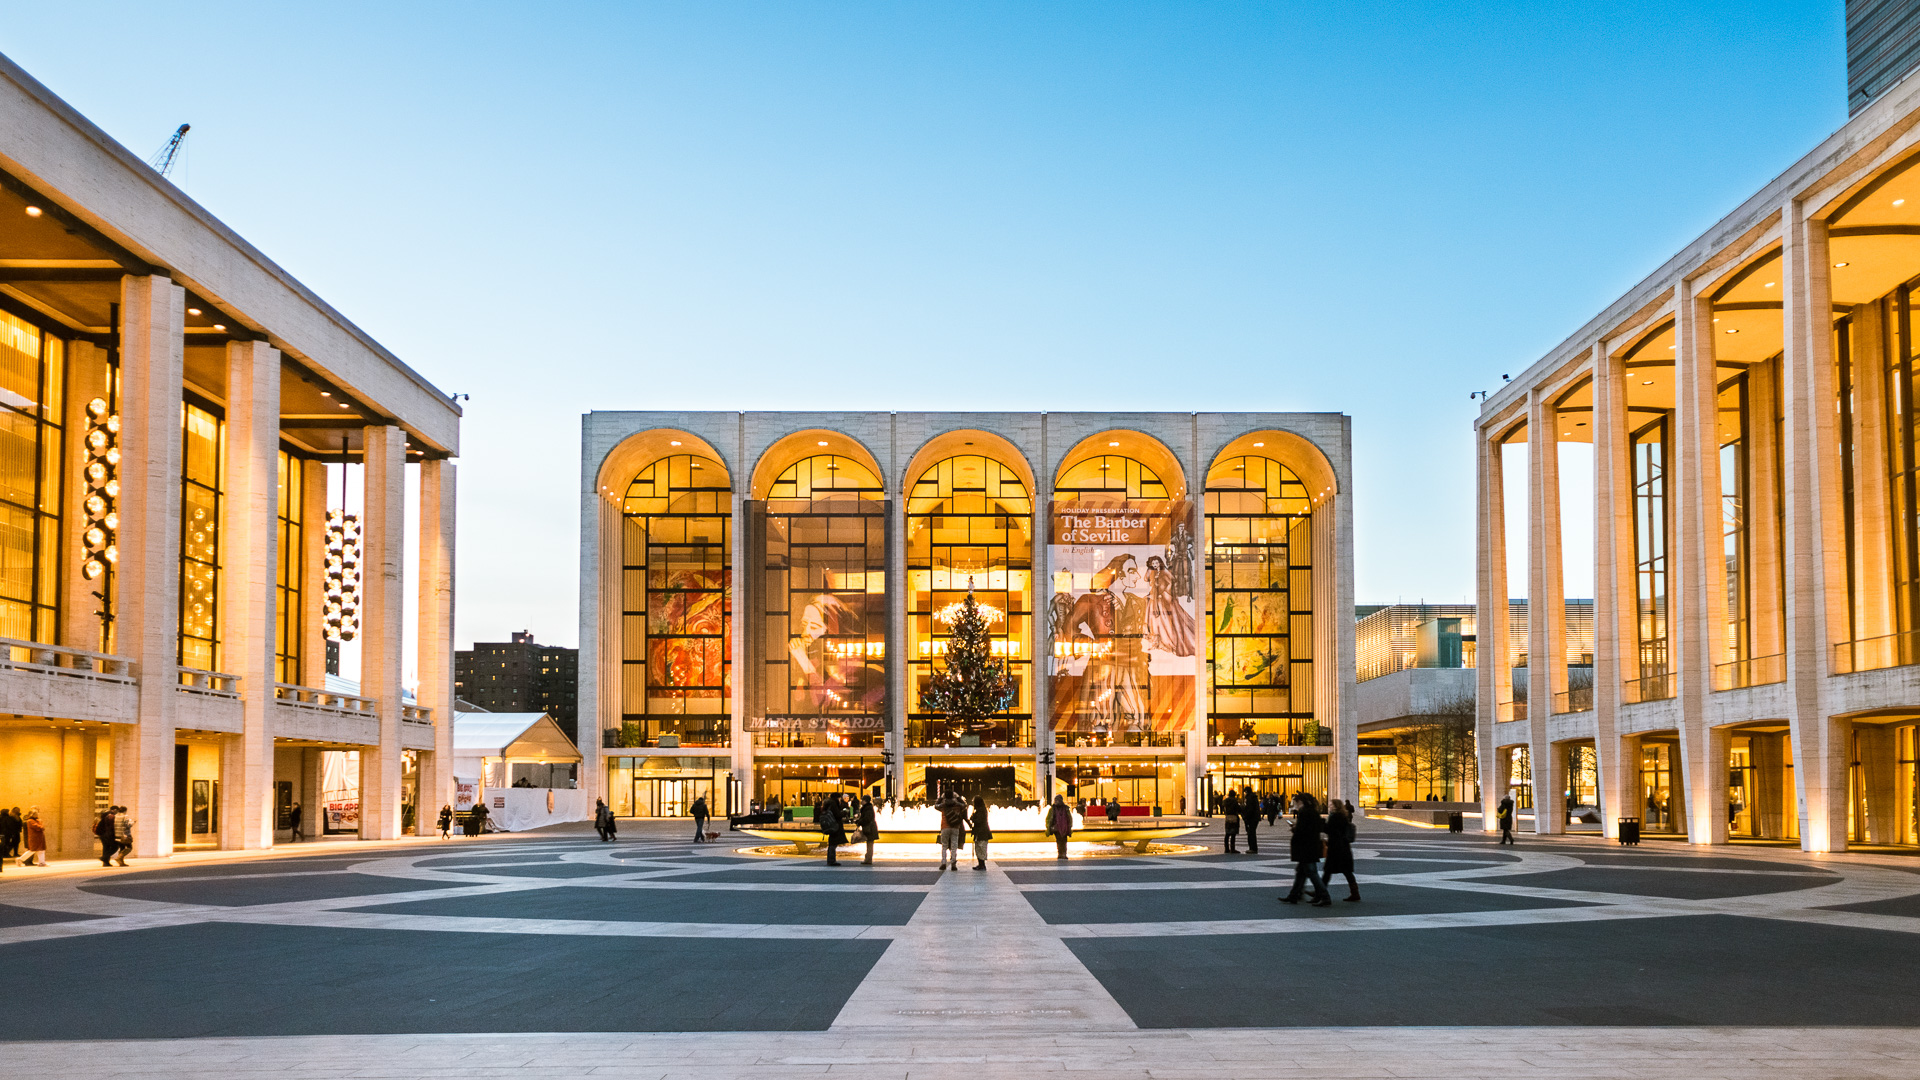 """New York, United States - December 6, 2012: People going to the opera The Barber of Seville at The Lincoln Center, one of the world's leading venue presenting superb artistic programming such as theate, concerts, dance, cinema and poetry."